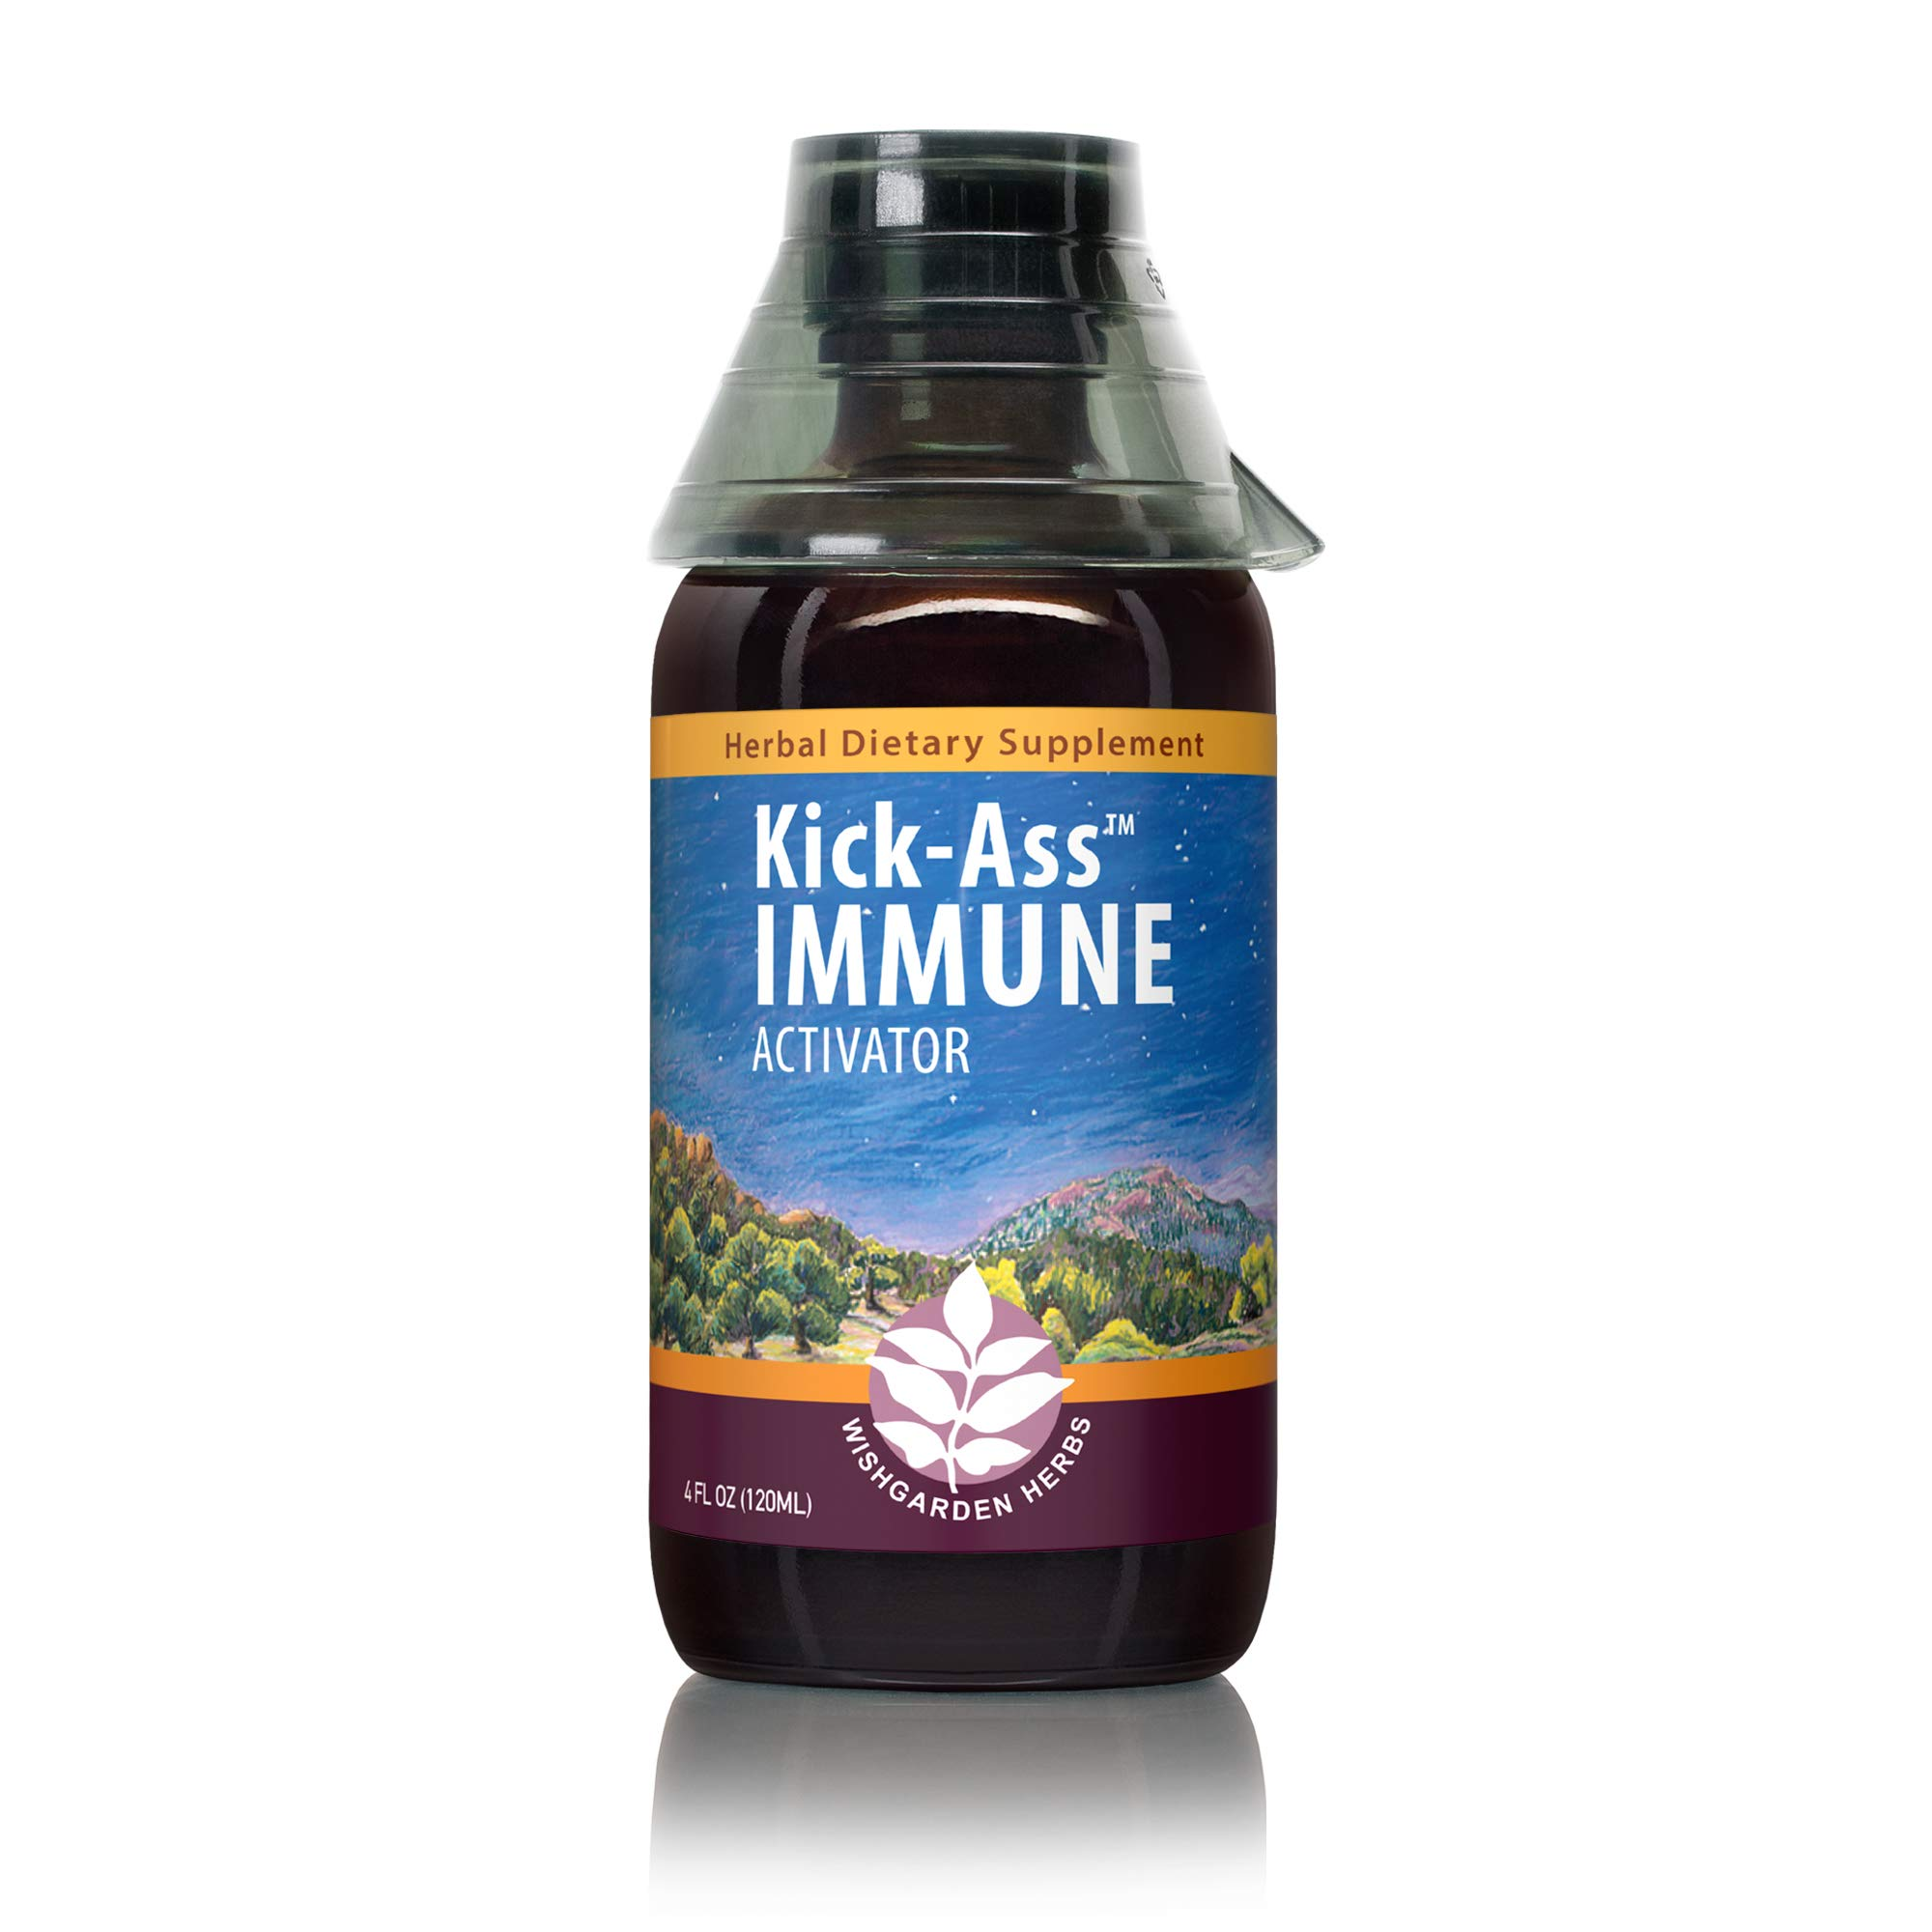 WishGarden Herbs Kick-Ass Immune - Organic Herbal Immune Booster Promotes Healthy System Response and Resistance, 4 Ounce